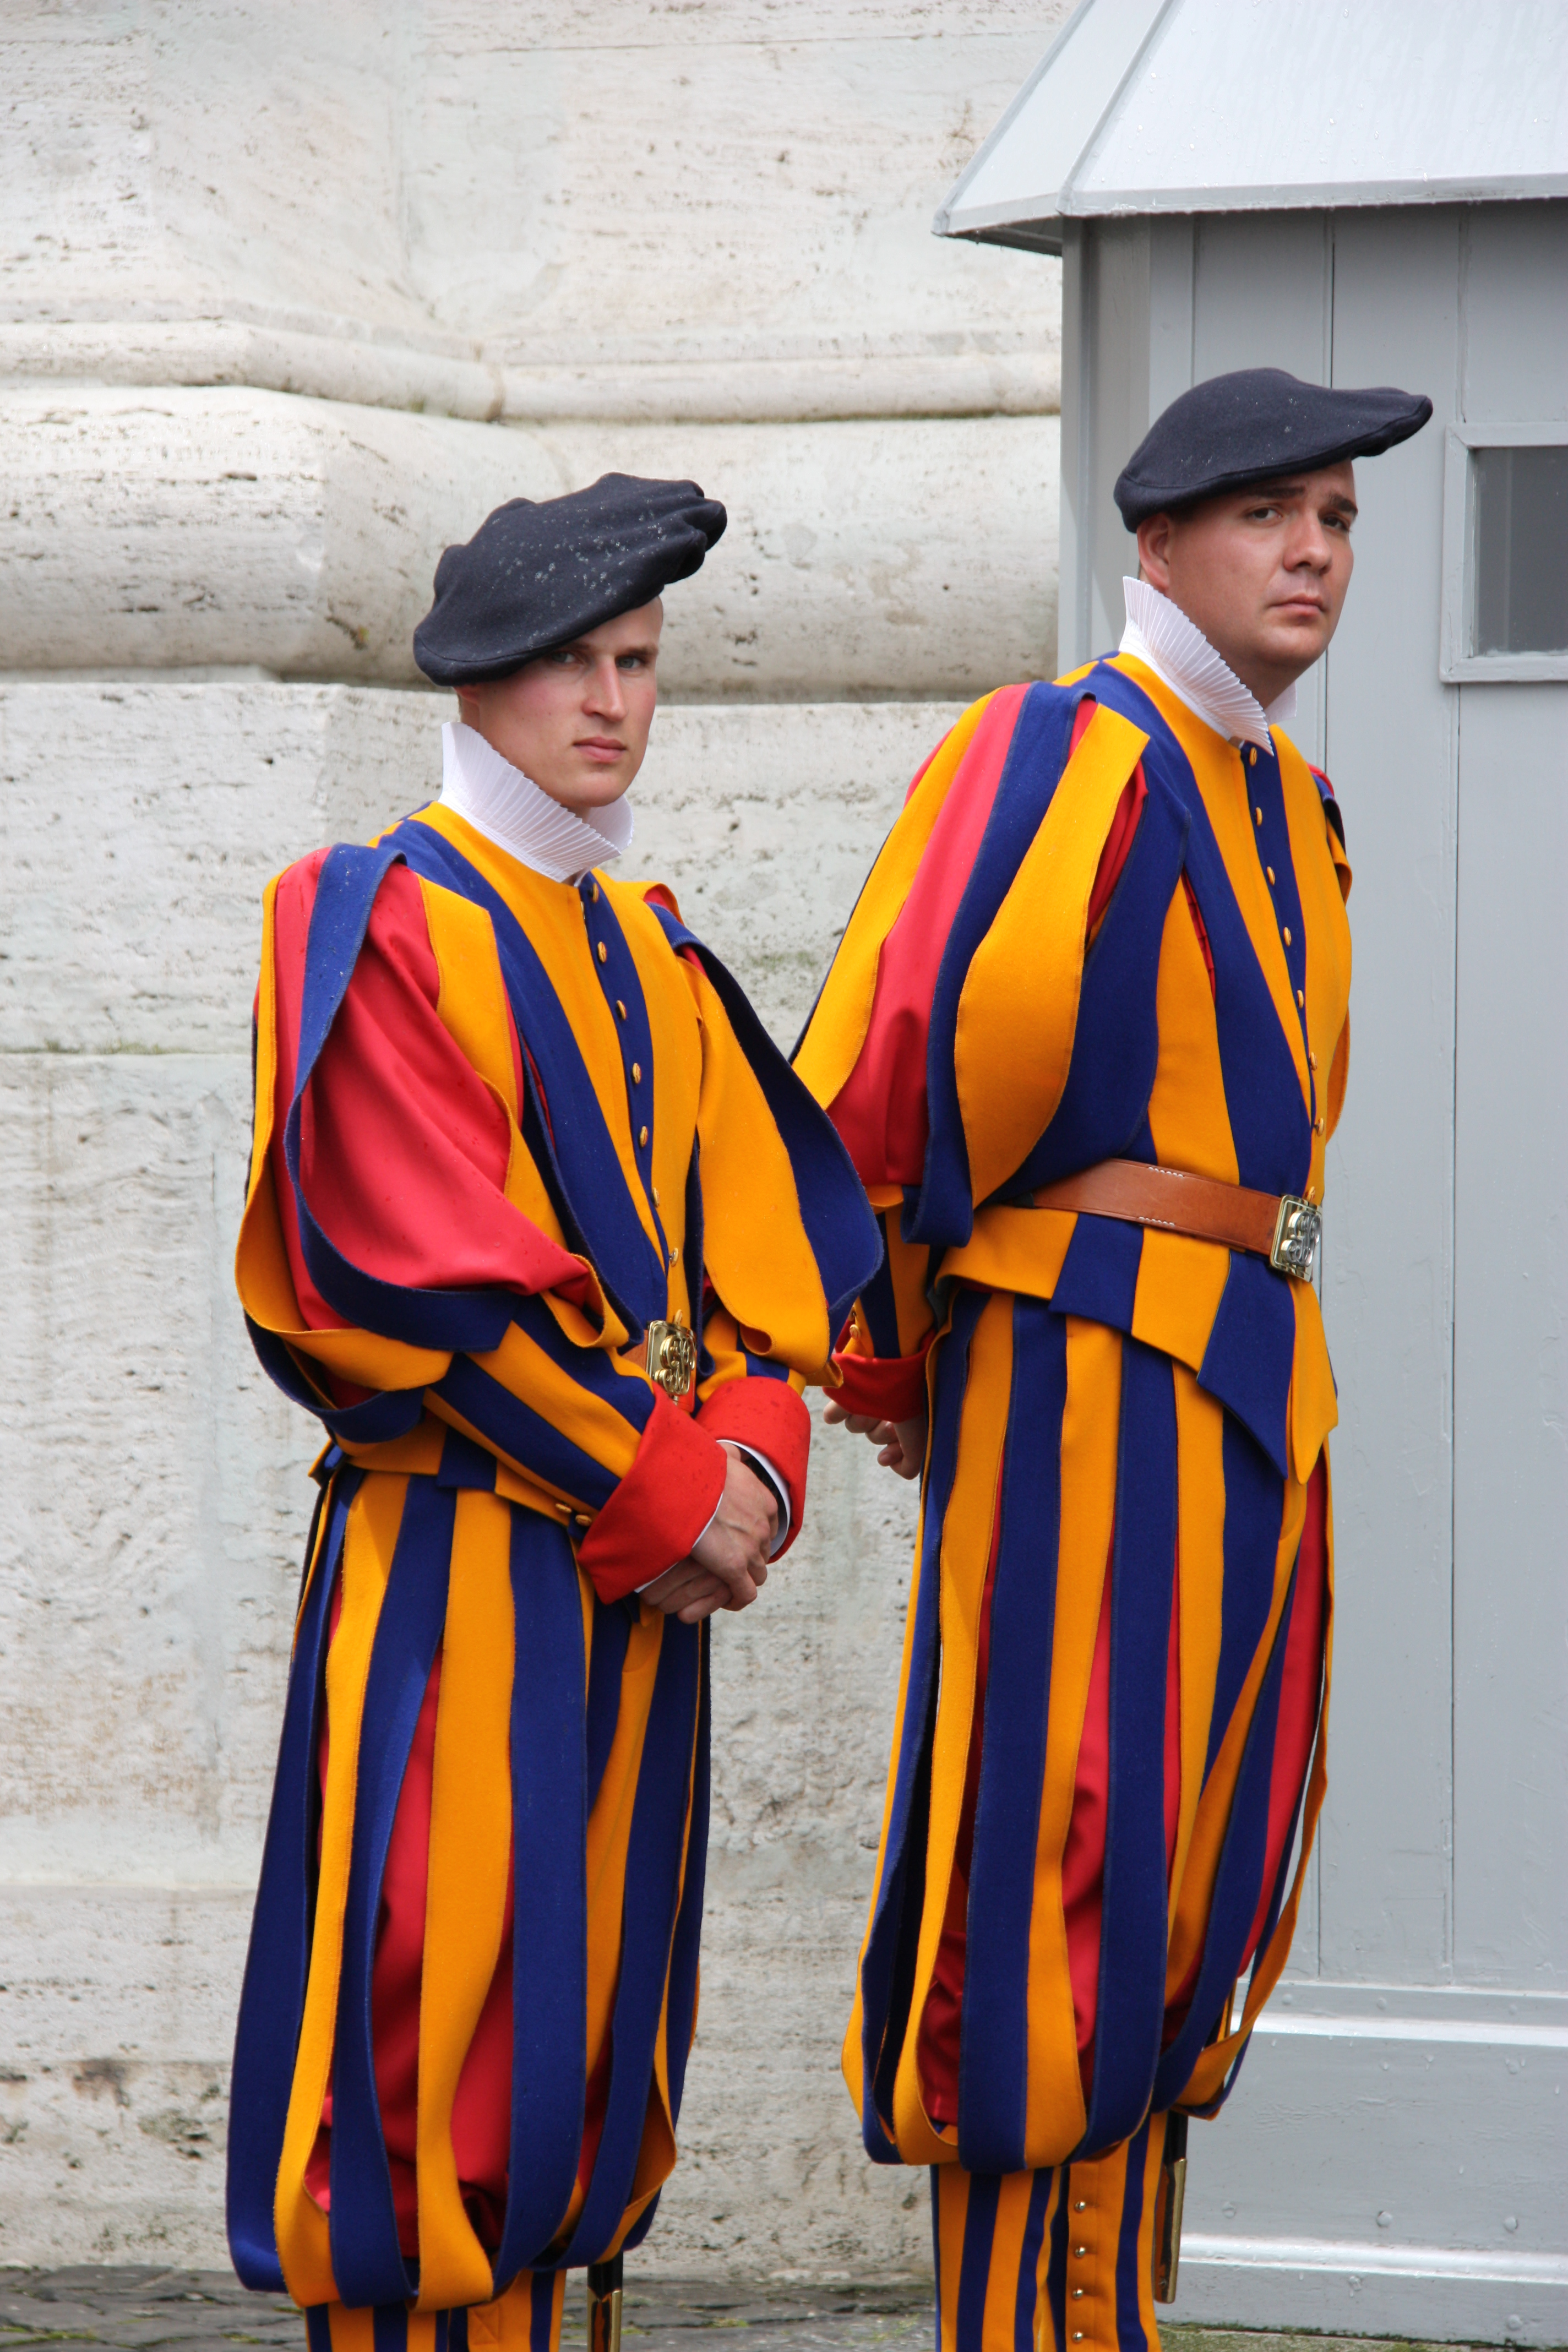 File:Swiss Guards In The Vatican City, 2010.jpg